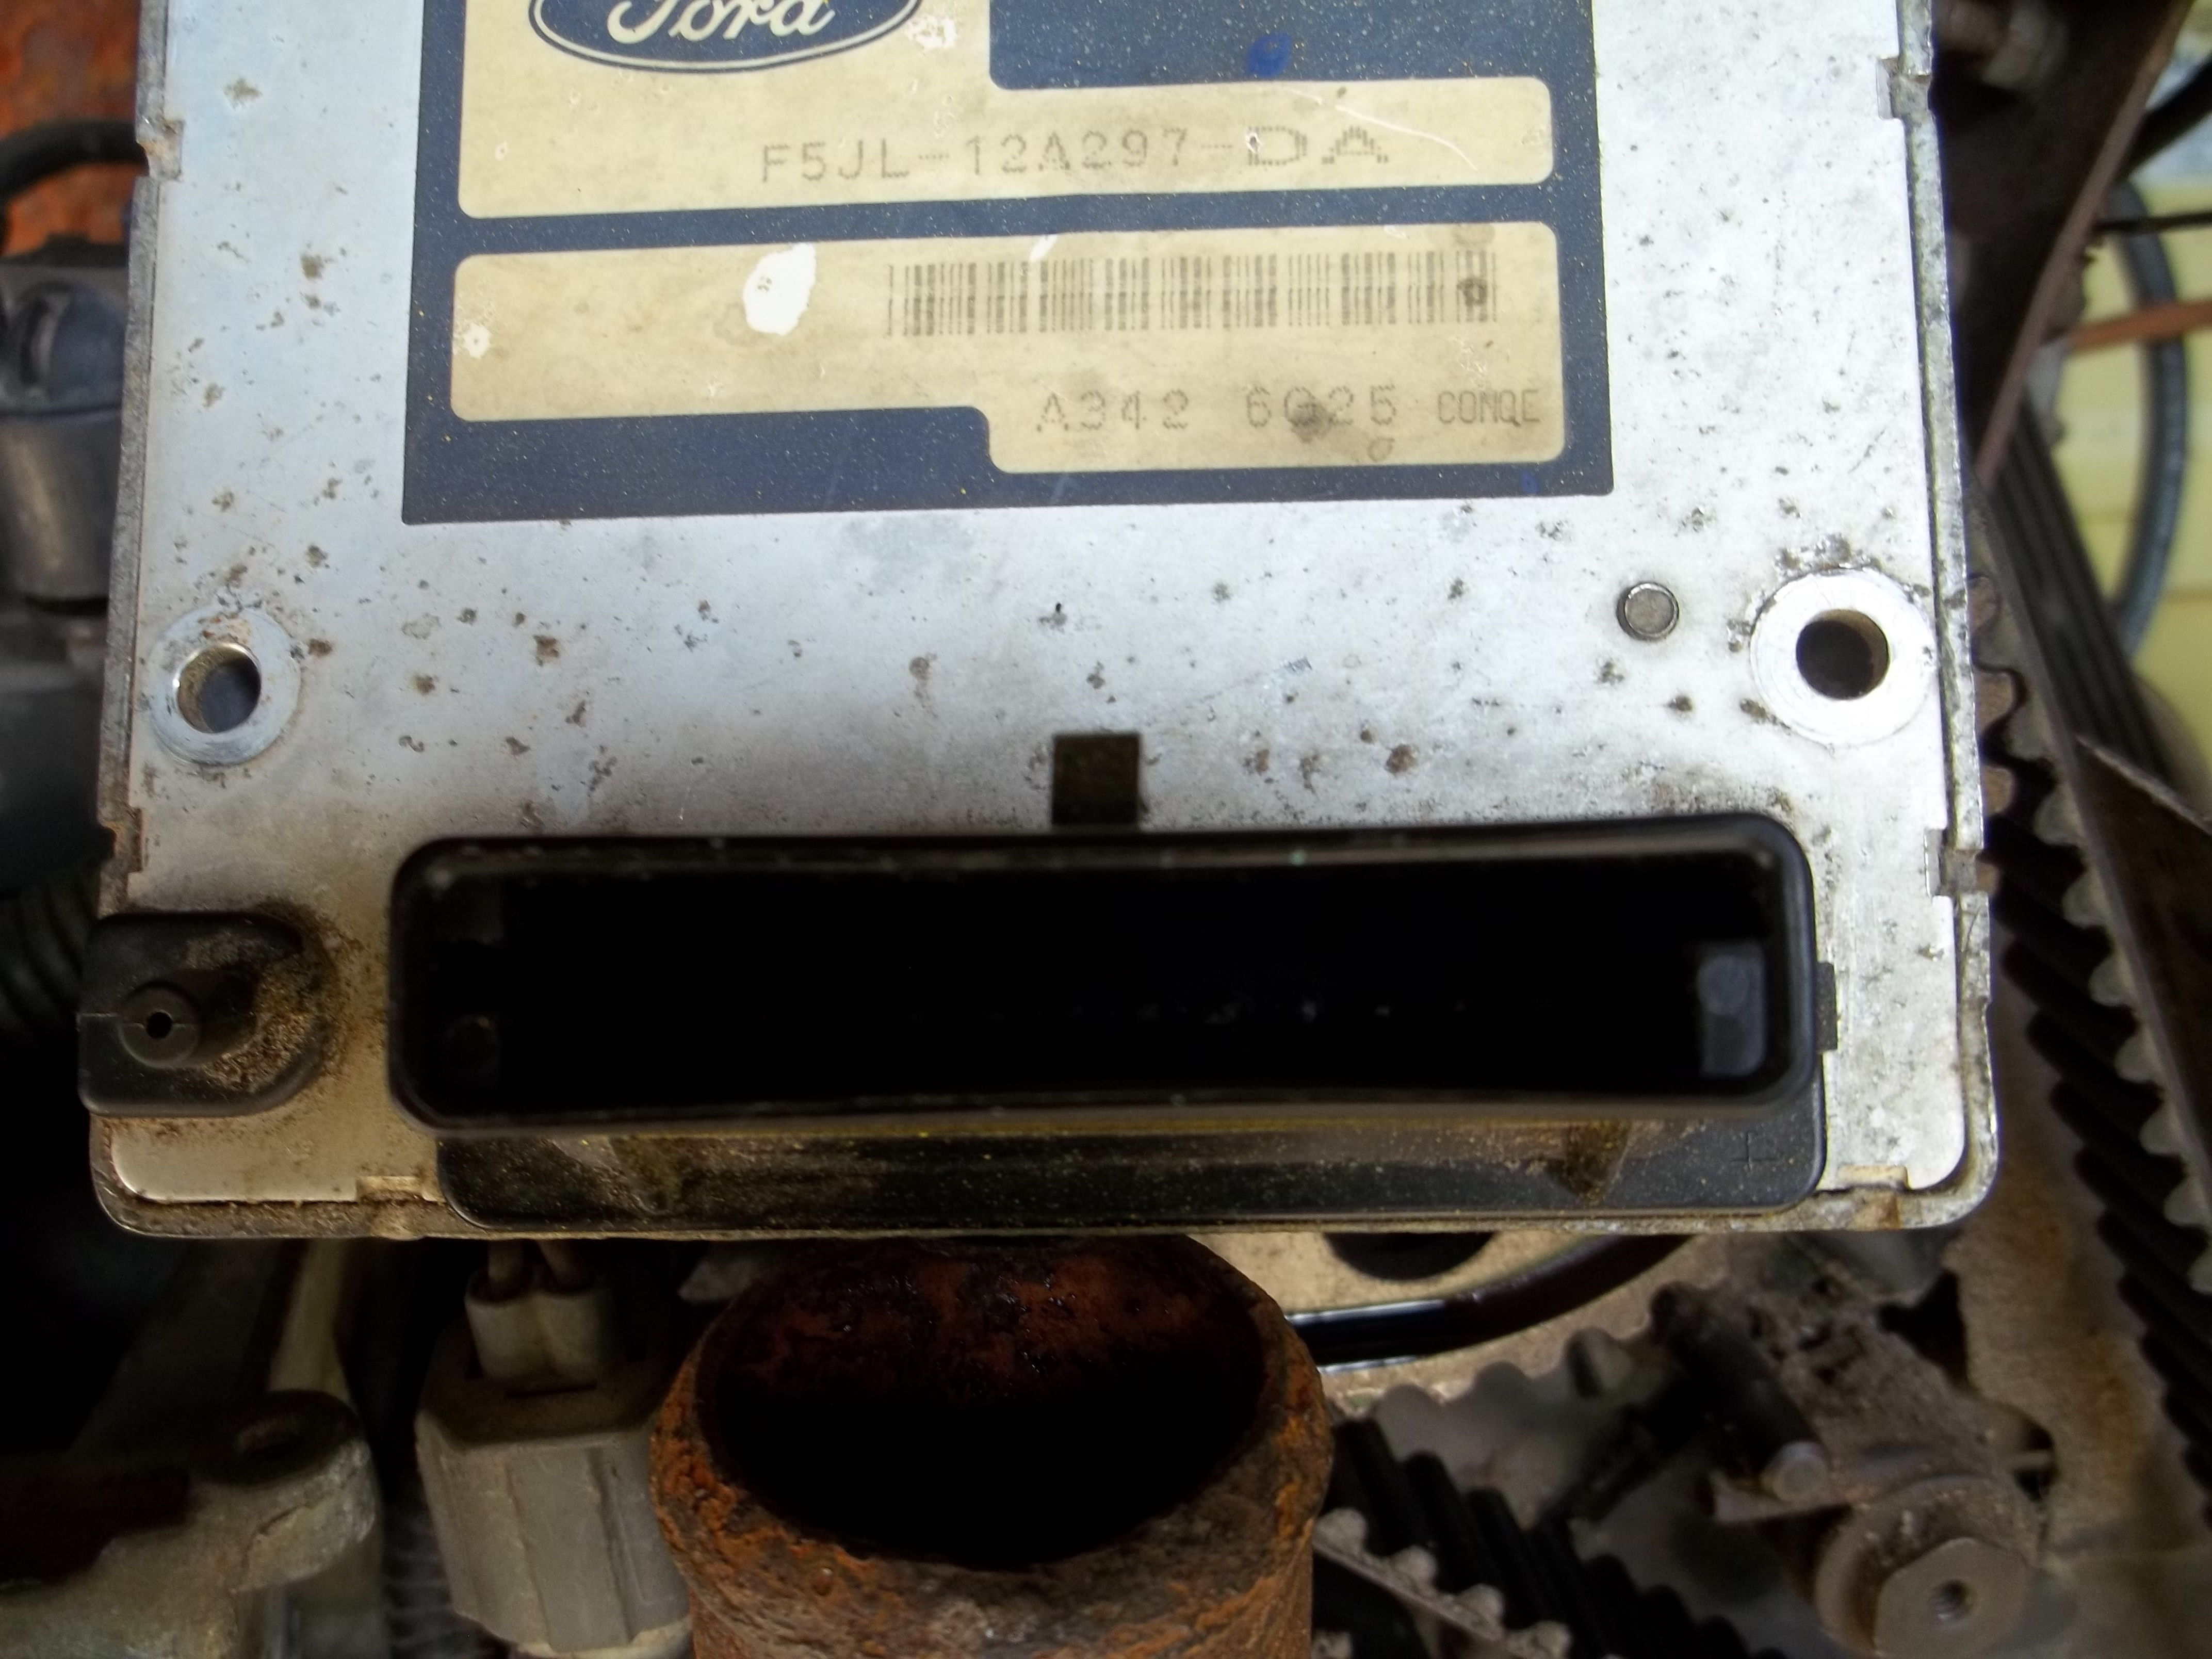 i have a ford module no f5jl 12a297da it is no longer available can rh justanswer com